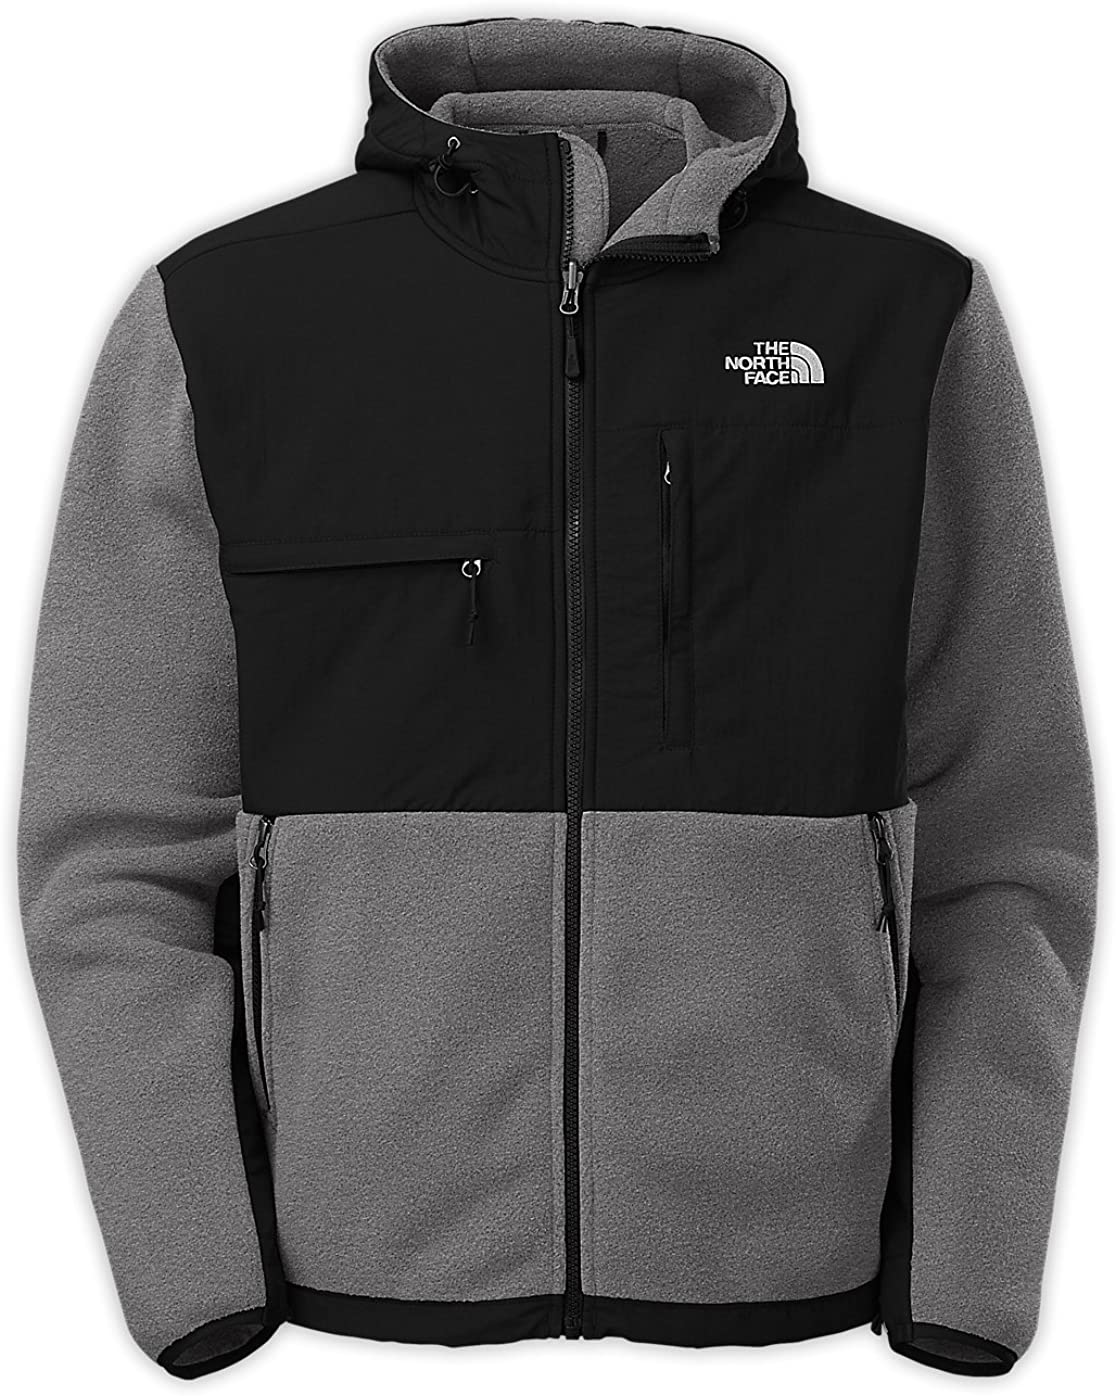 The North Face mens Hoodie